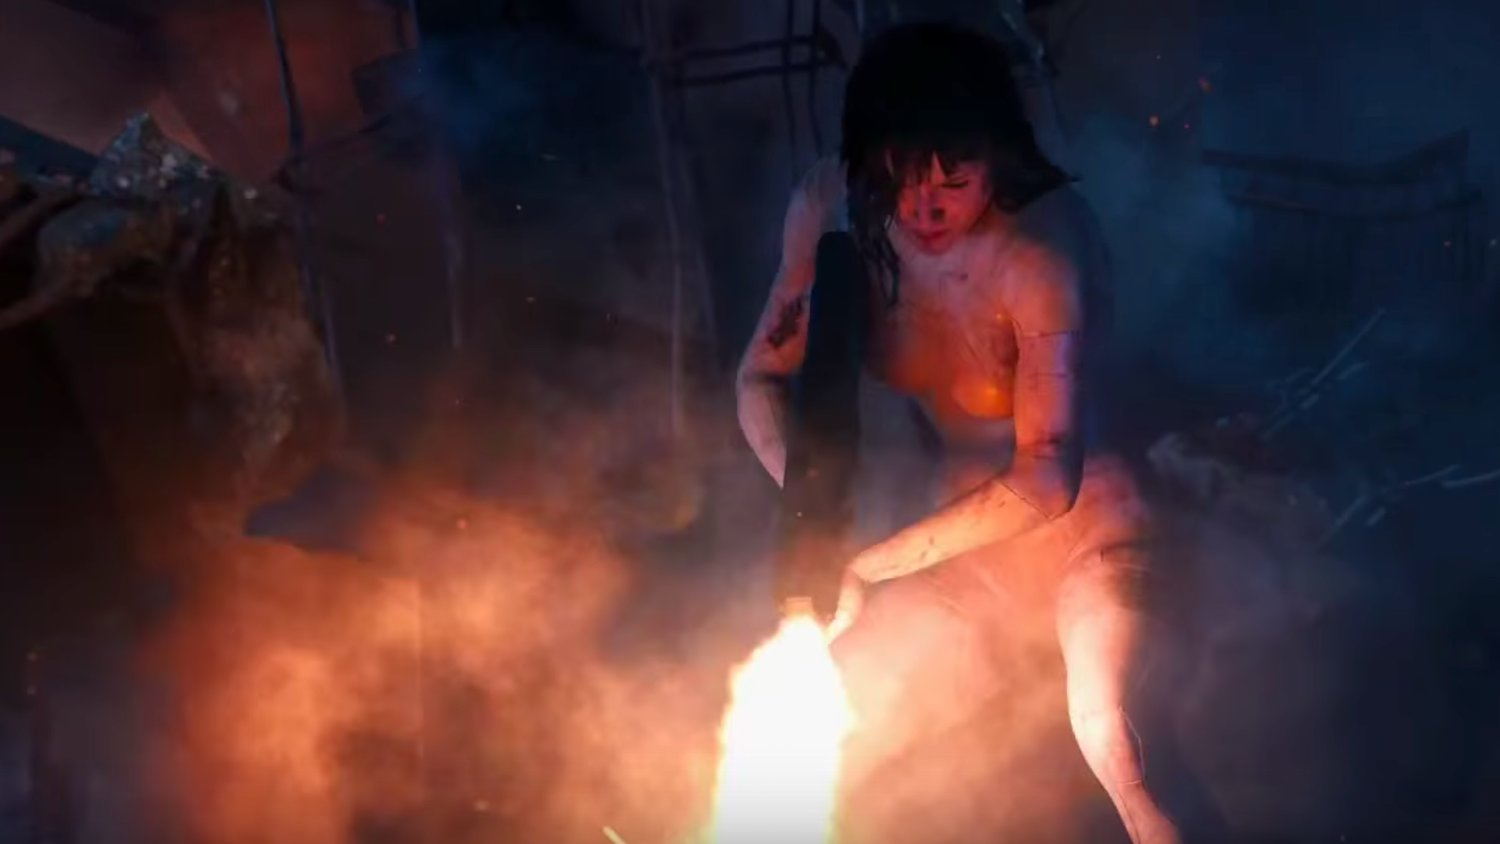 The Major Battles the Hexapod Tank in Thrilling Final Trailer for GHOST IN THE SHELL